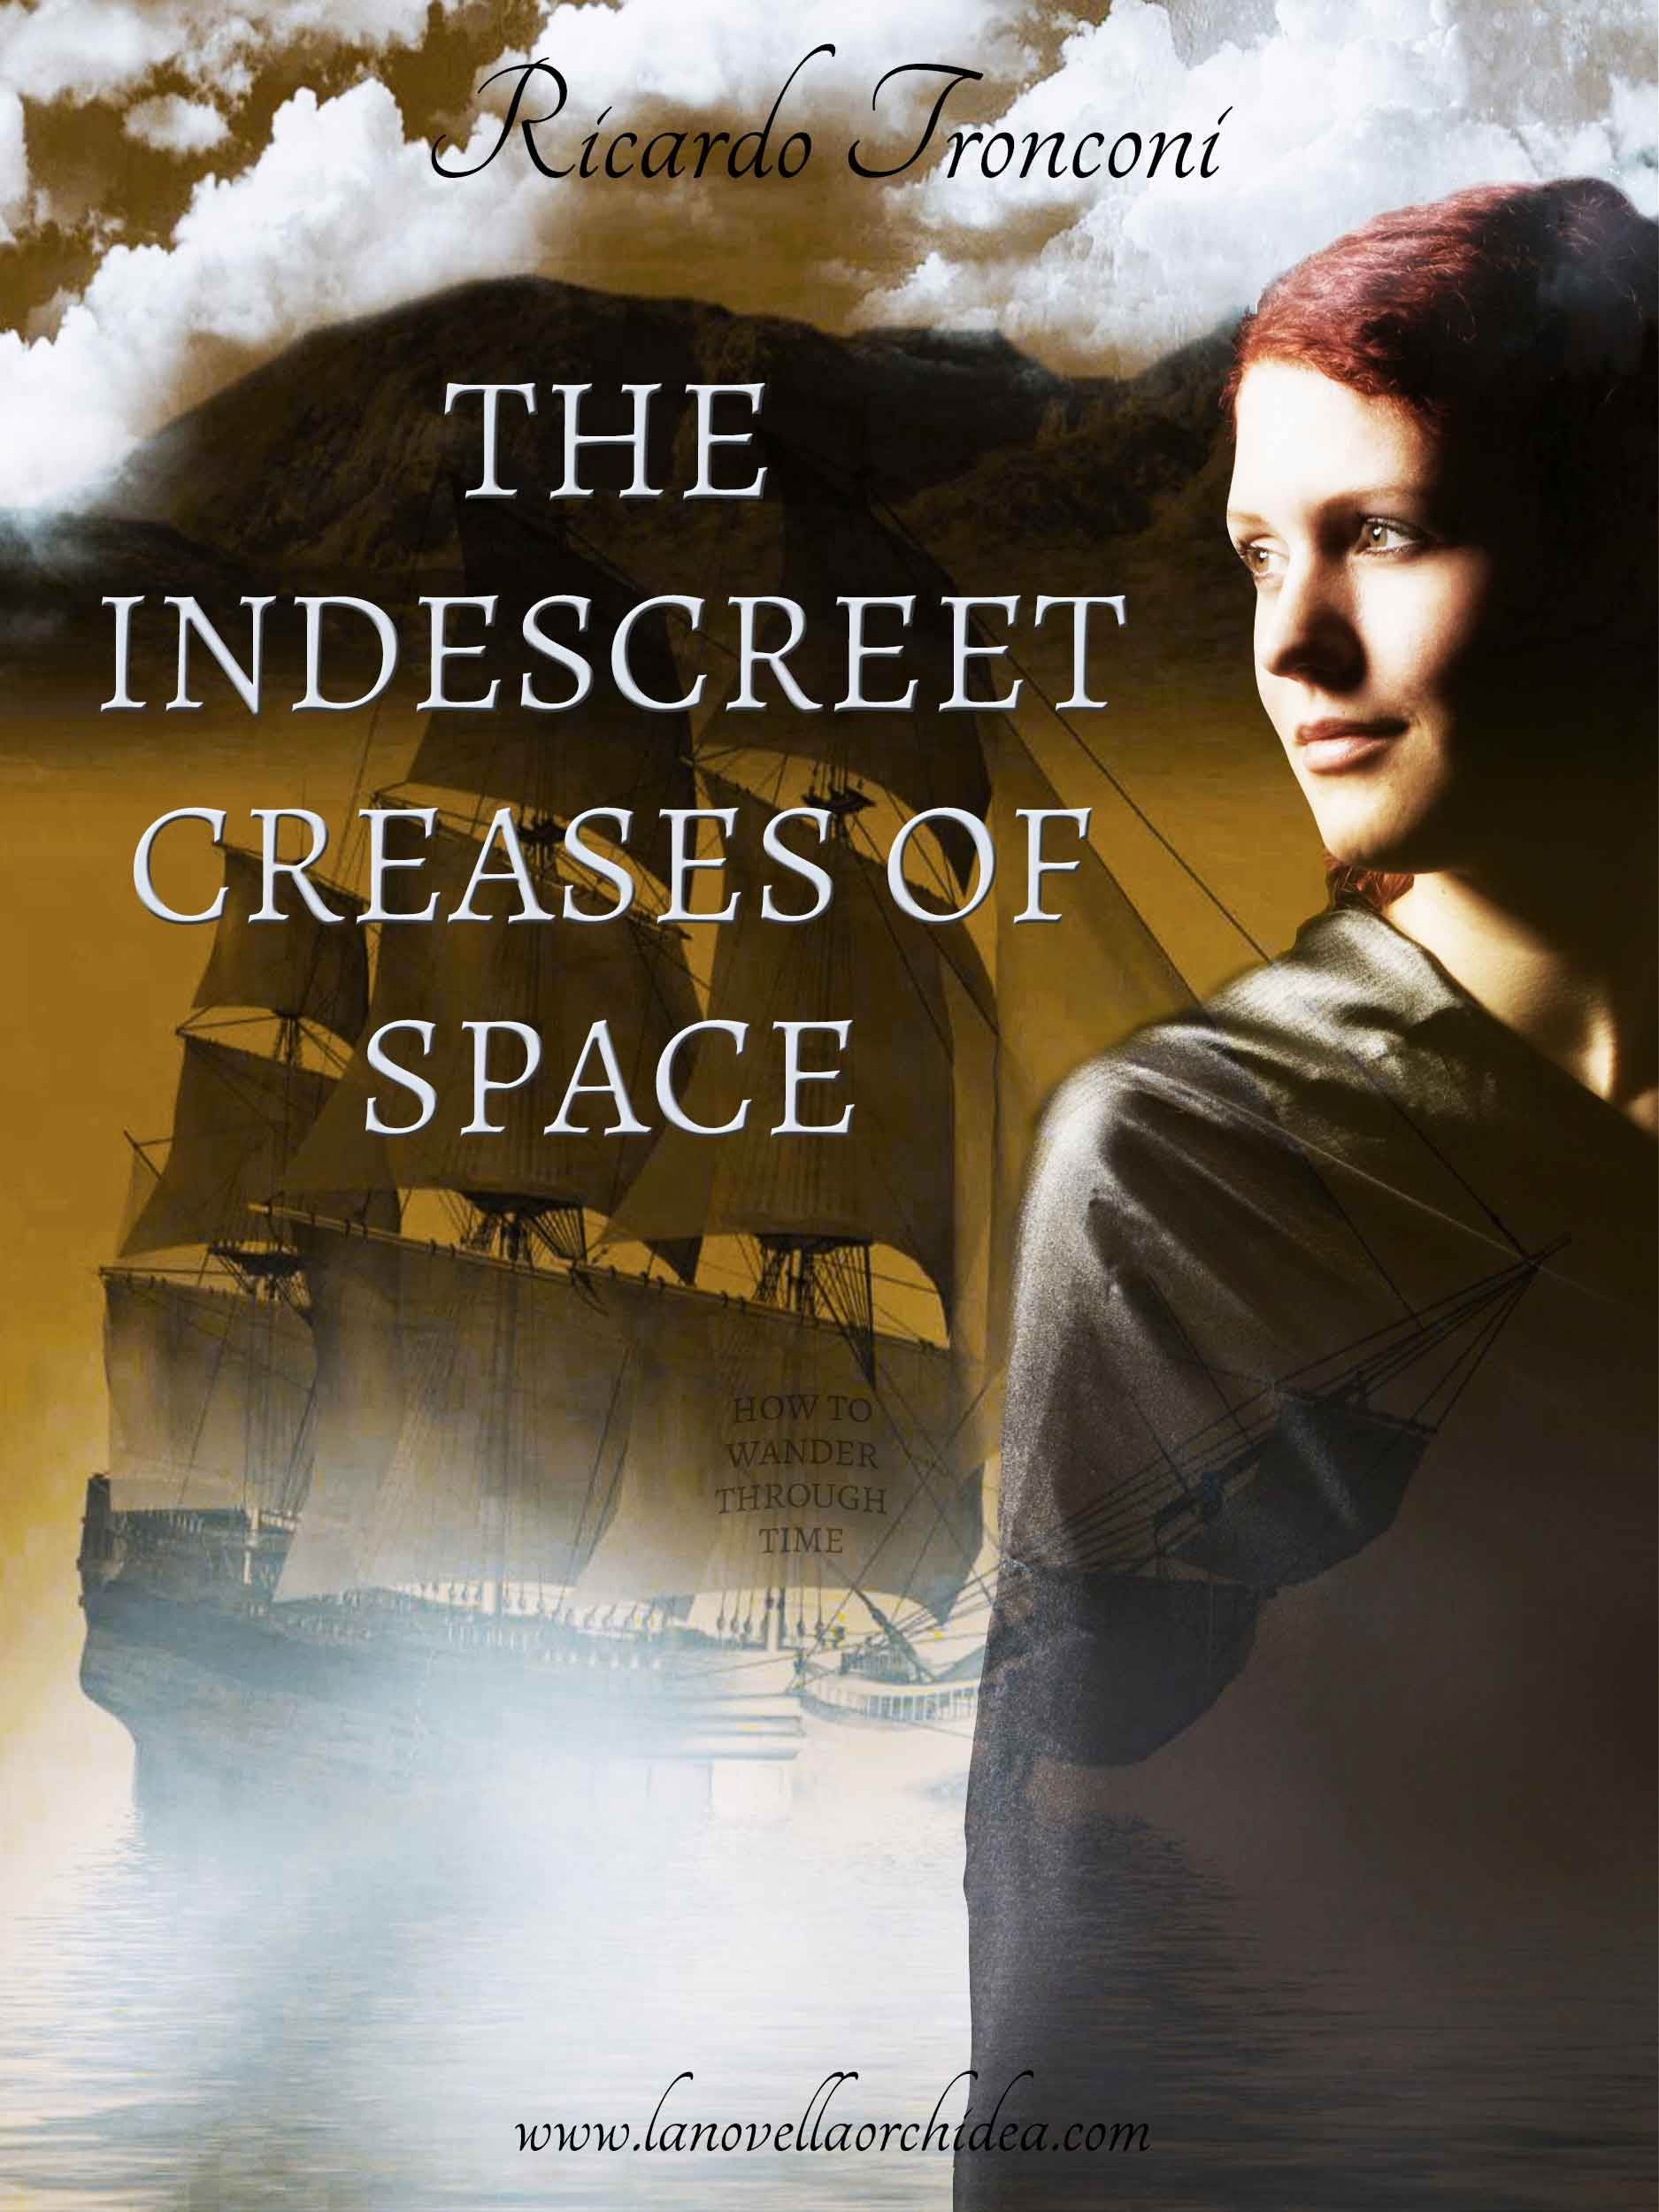 The Indiscreet Creases Of Space